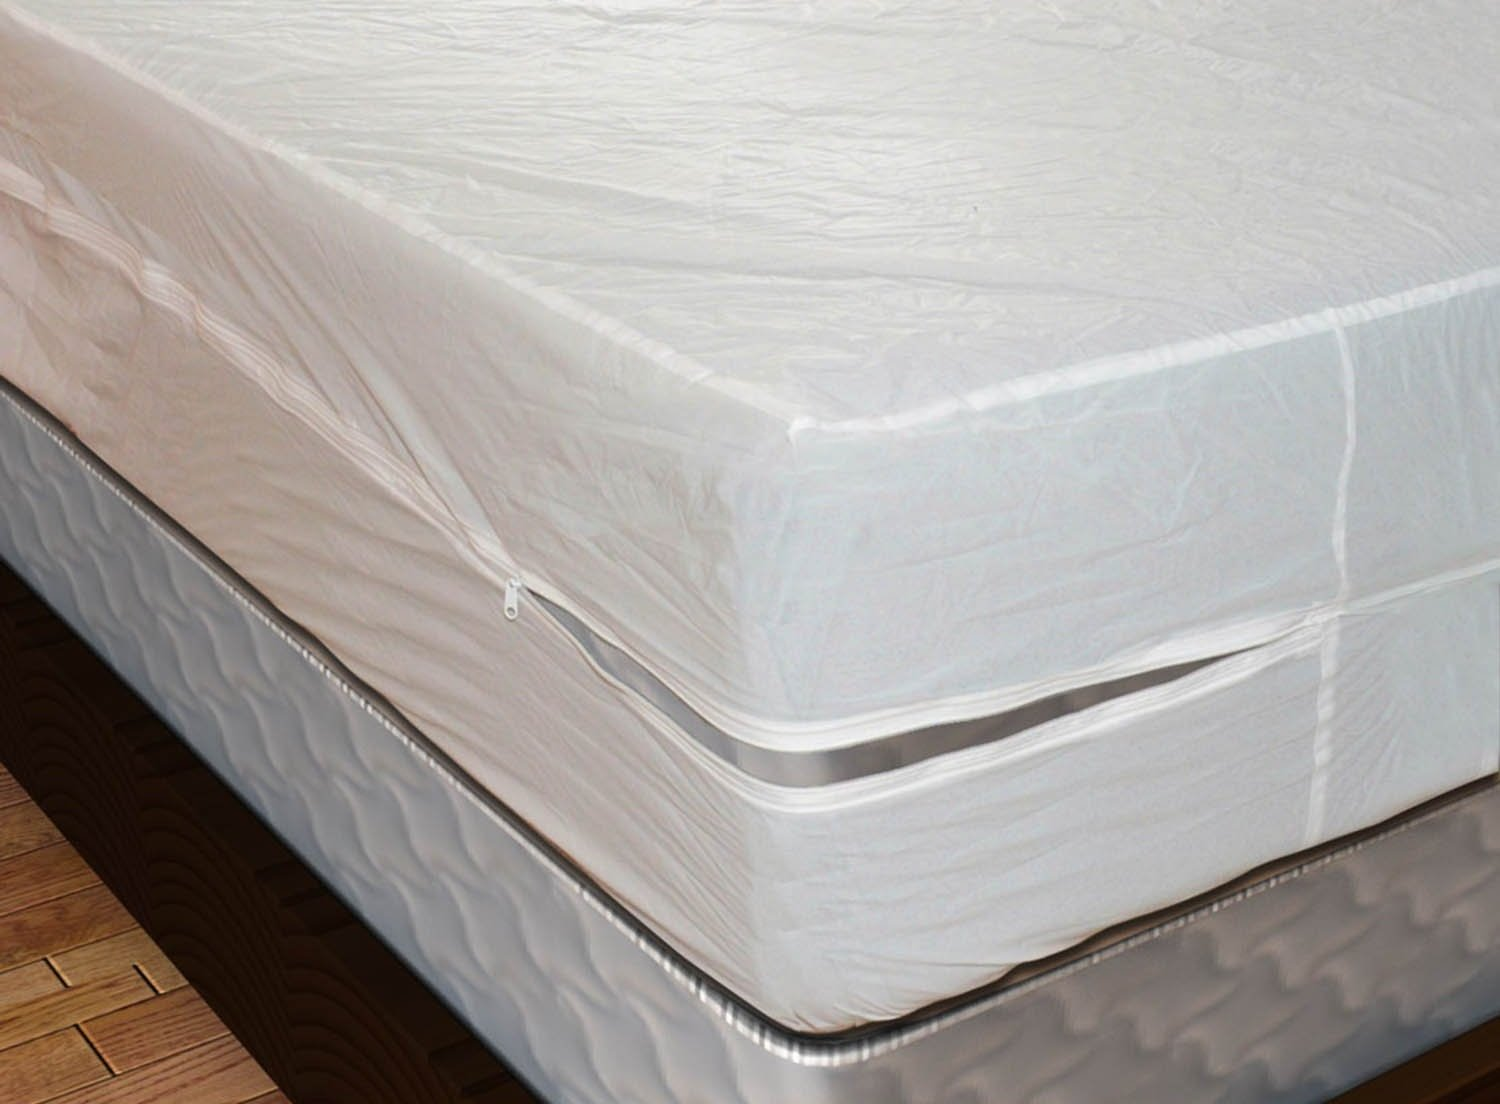 mattress cover with zipper. amazoncom hypoallergenic 100 waterproof mattress protector zippered cover bed bug blocker fits up to 15 with zipper